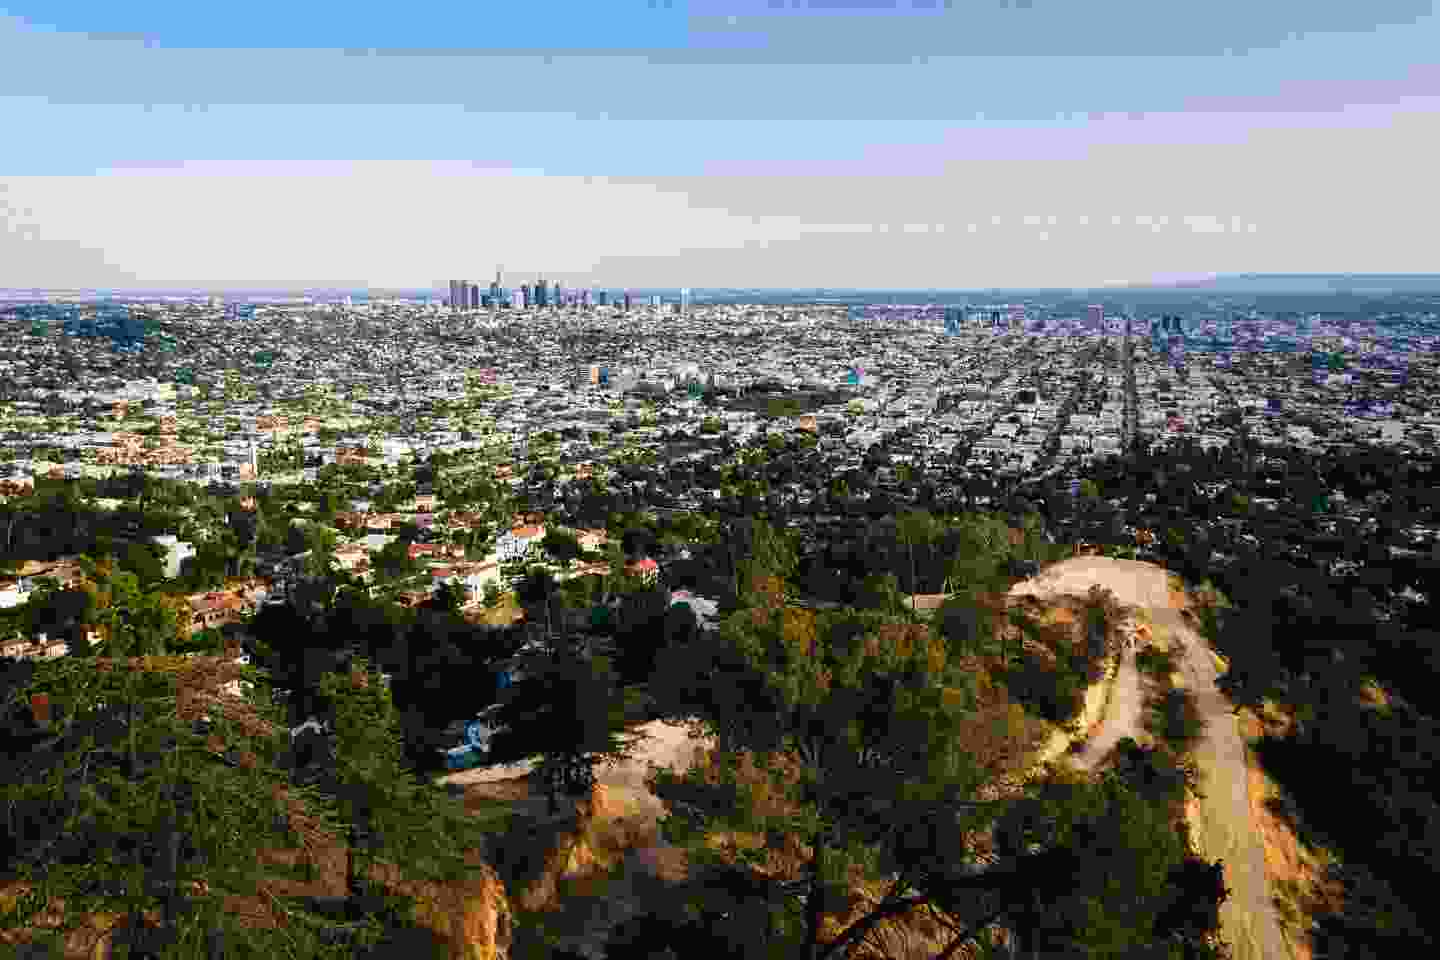 Downtown Los Angeles seen from the trails of Griffith Park (Shutterstock)